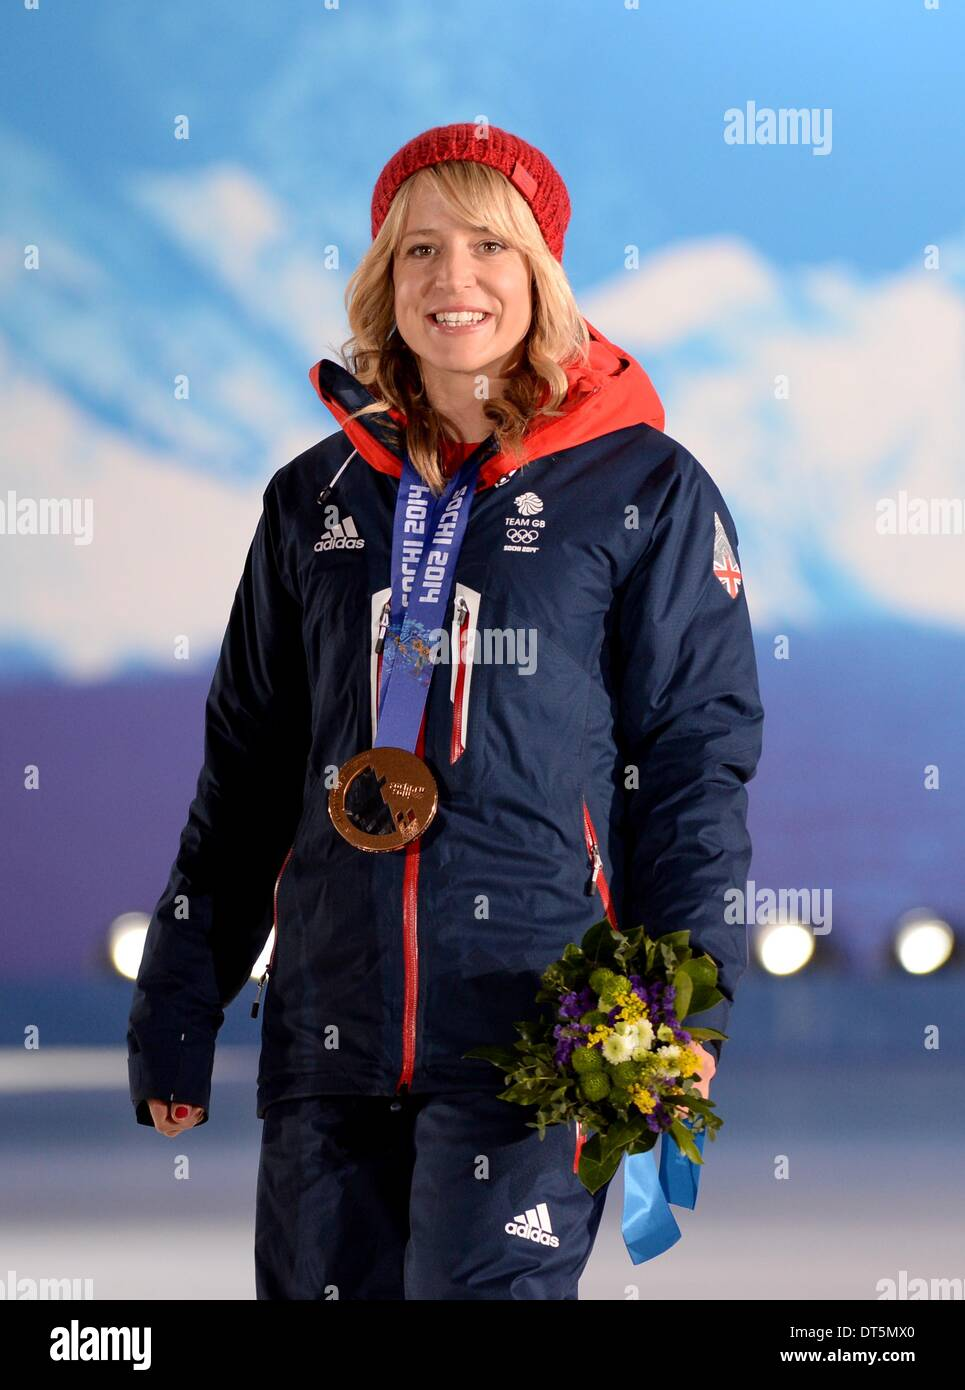 Sochi, Russia. 9th February 2014. Jenny Jones (GBR) with her bronze medal for the Snowboard slopestyle. Medal Ceremonies - Olympic Plaza - Sochi - Russia - 09/02/2014 Credit:  Sport In Pictures/Alamy Live News - Stock Image